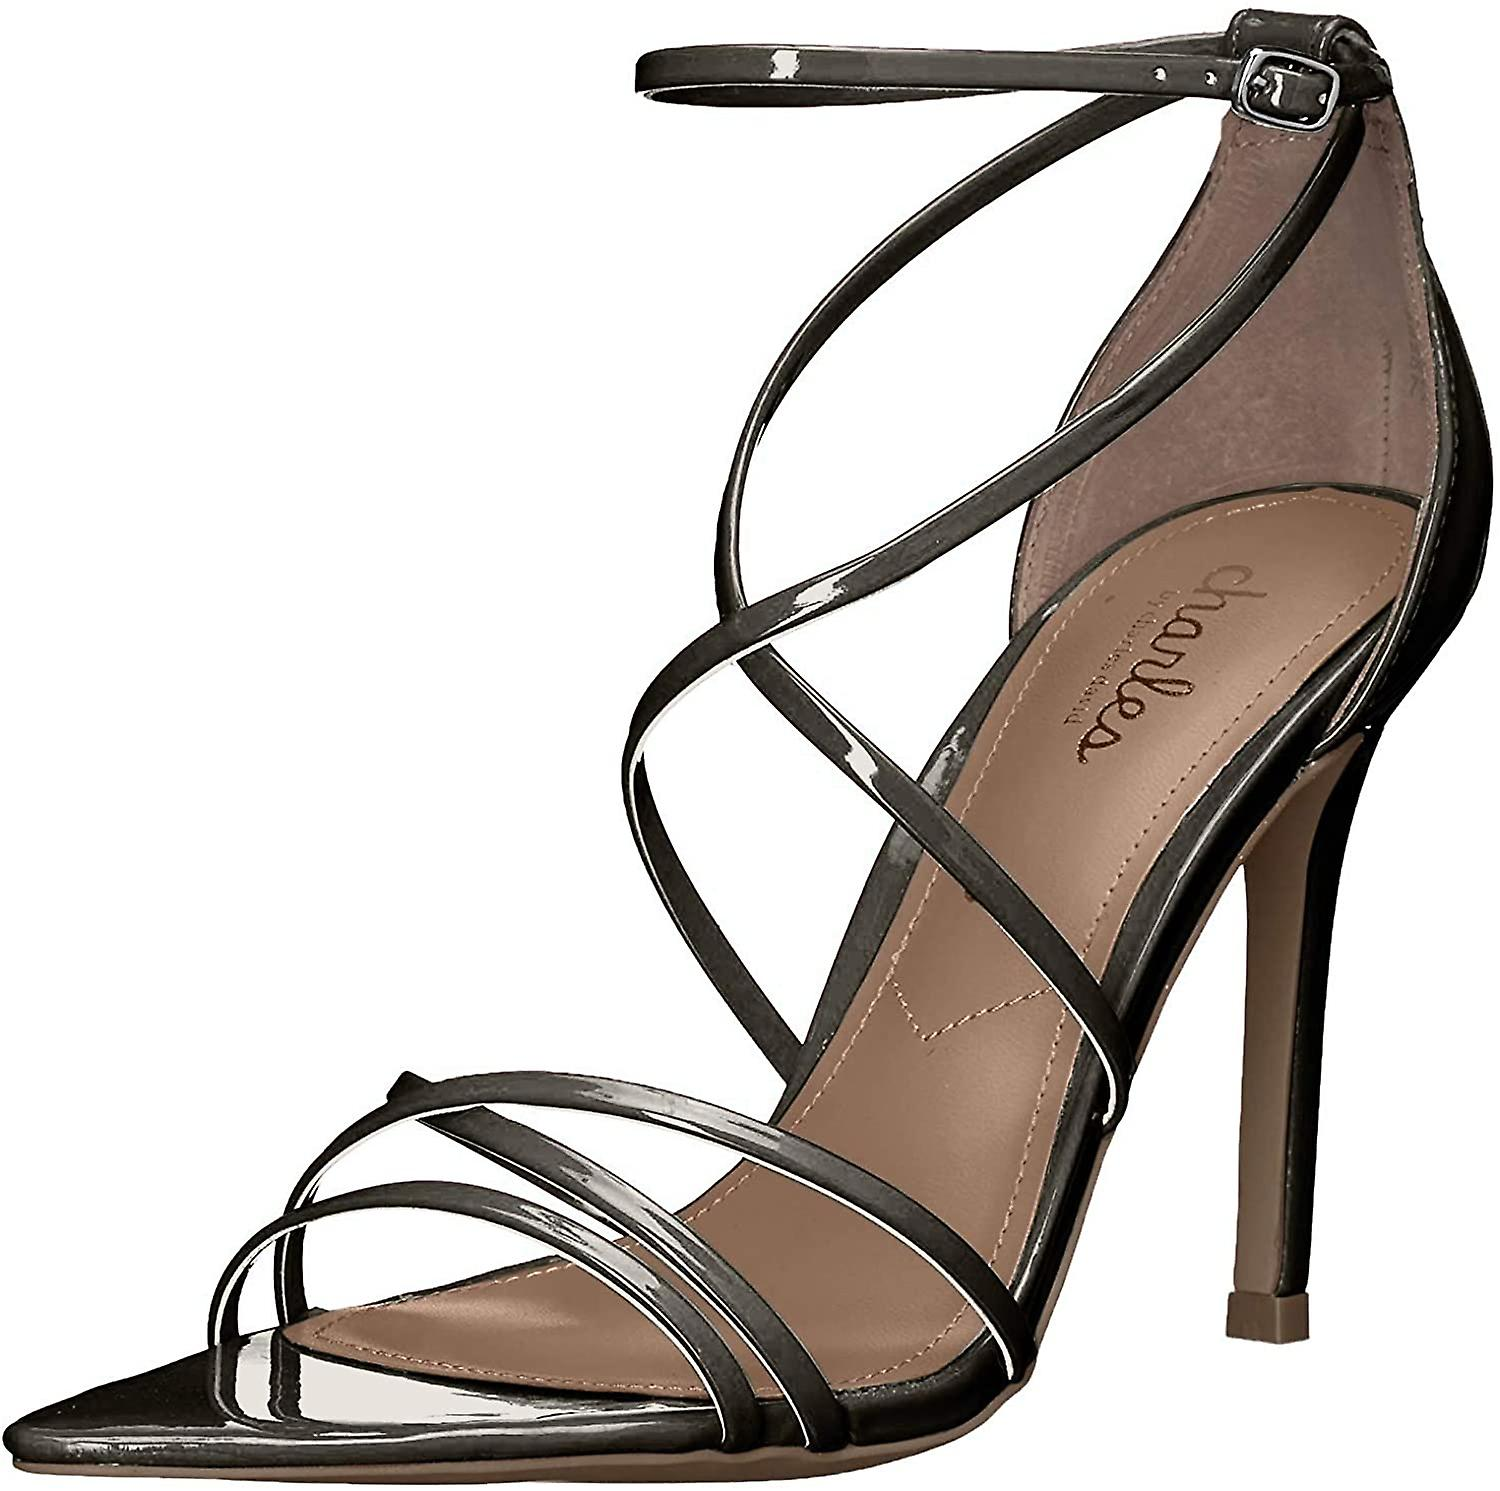 Charles by Charles David Womens 2D19S116 Open Toe Casual Ankle Strap Sandals